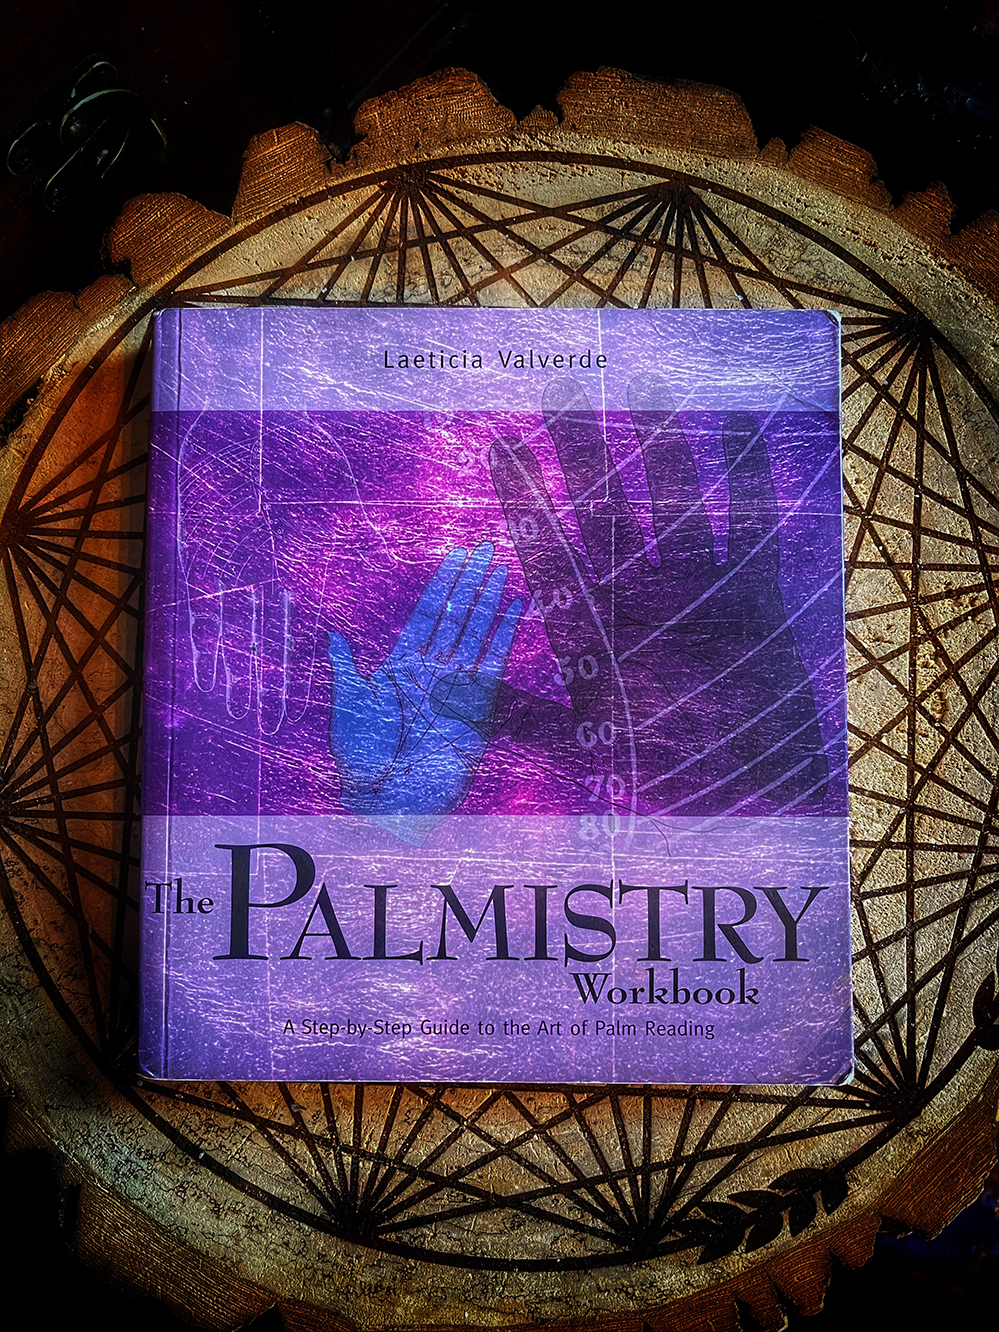 The Palmistry Workbook: A Step-by-Step Guide